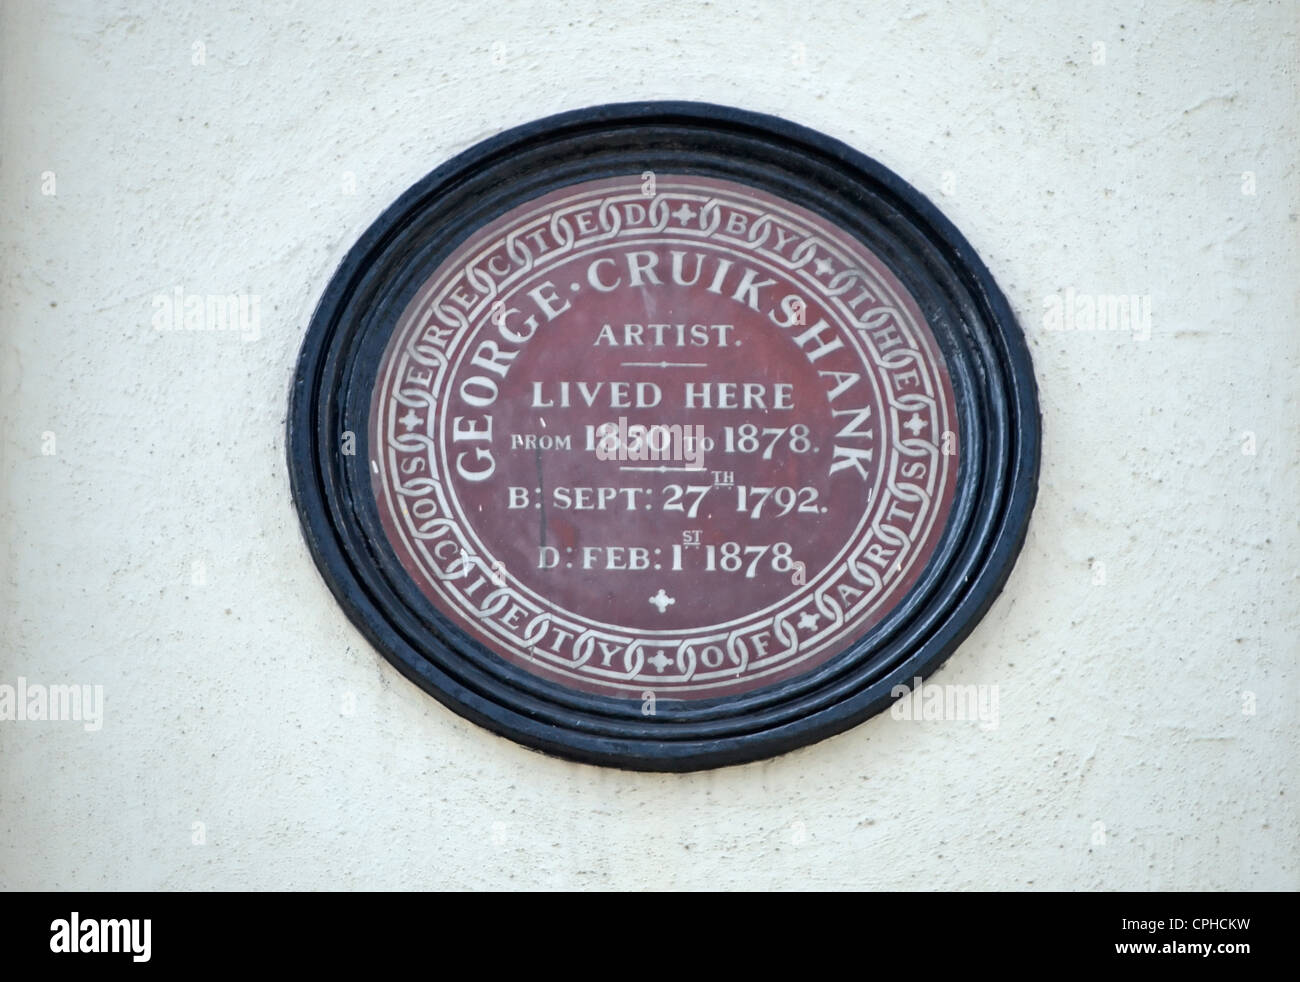 society of arts plaque marking a home of artist george cruikshank, camden,  london, england - Stock Image